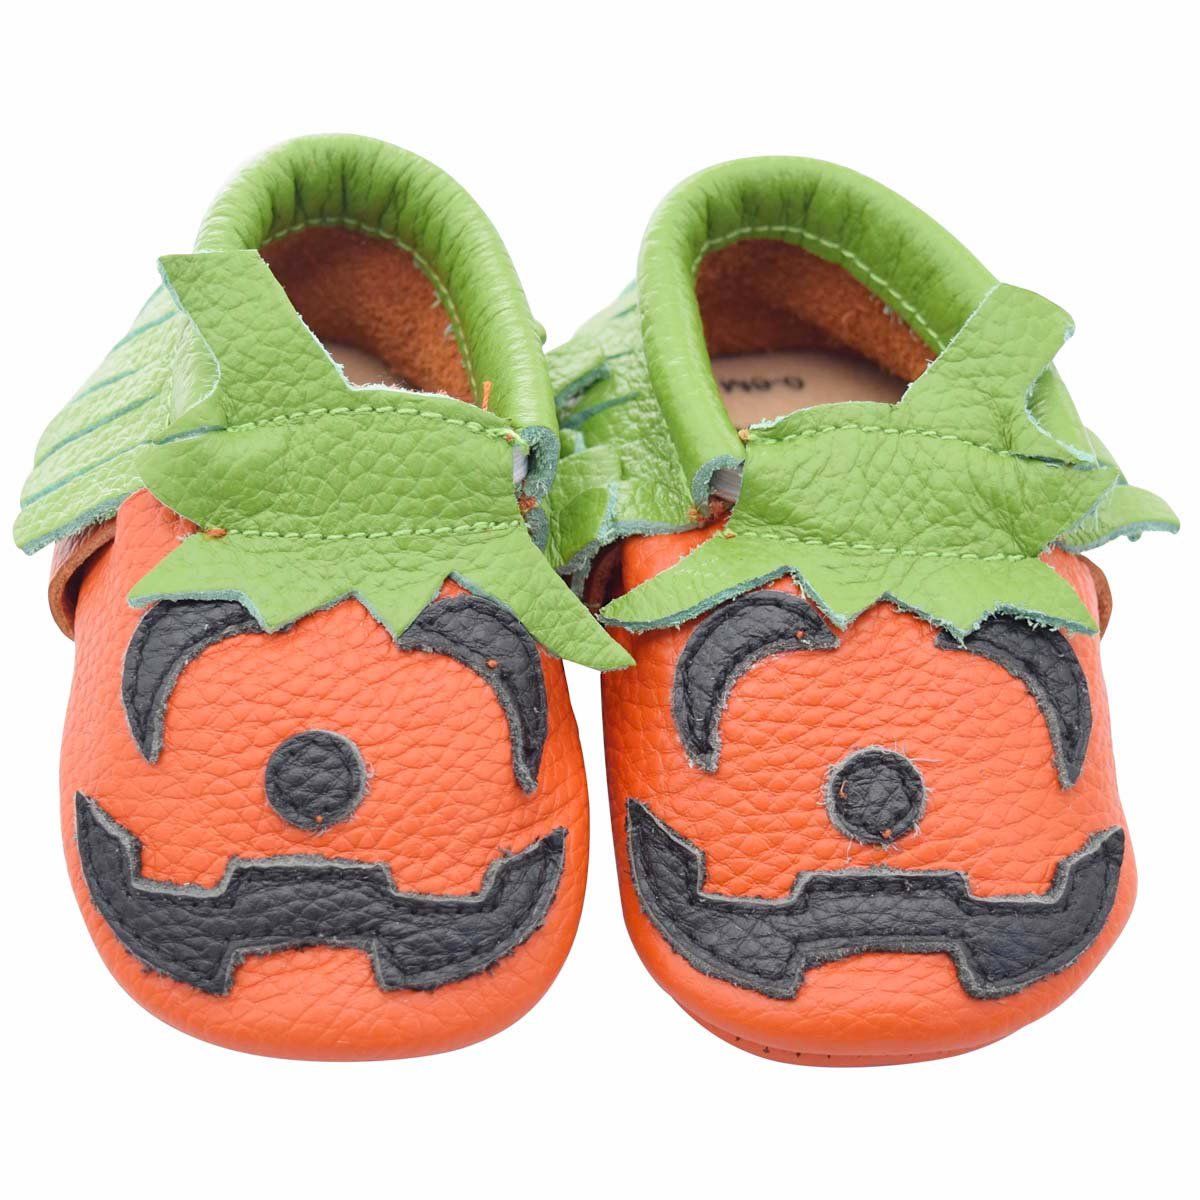 Unique Baby Limited Edition Genuine Leather Halloween Moccasins